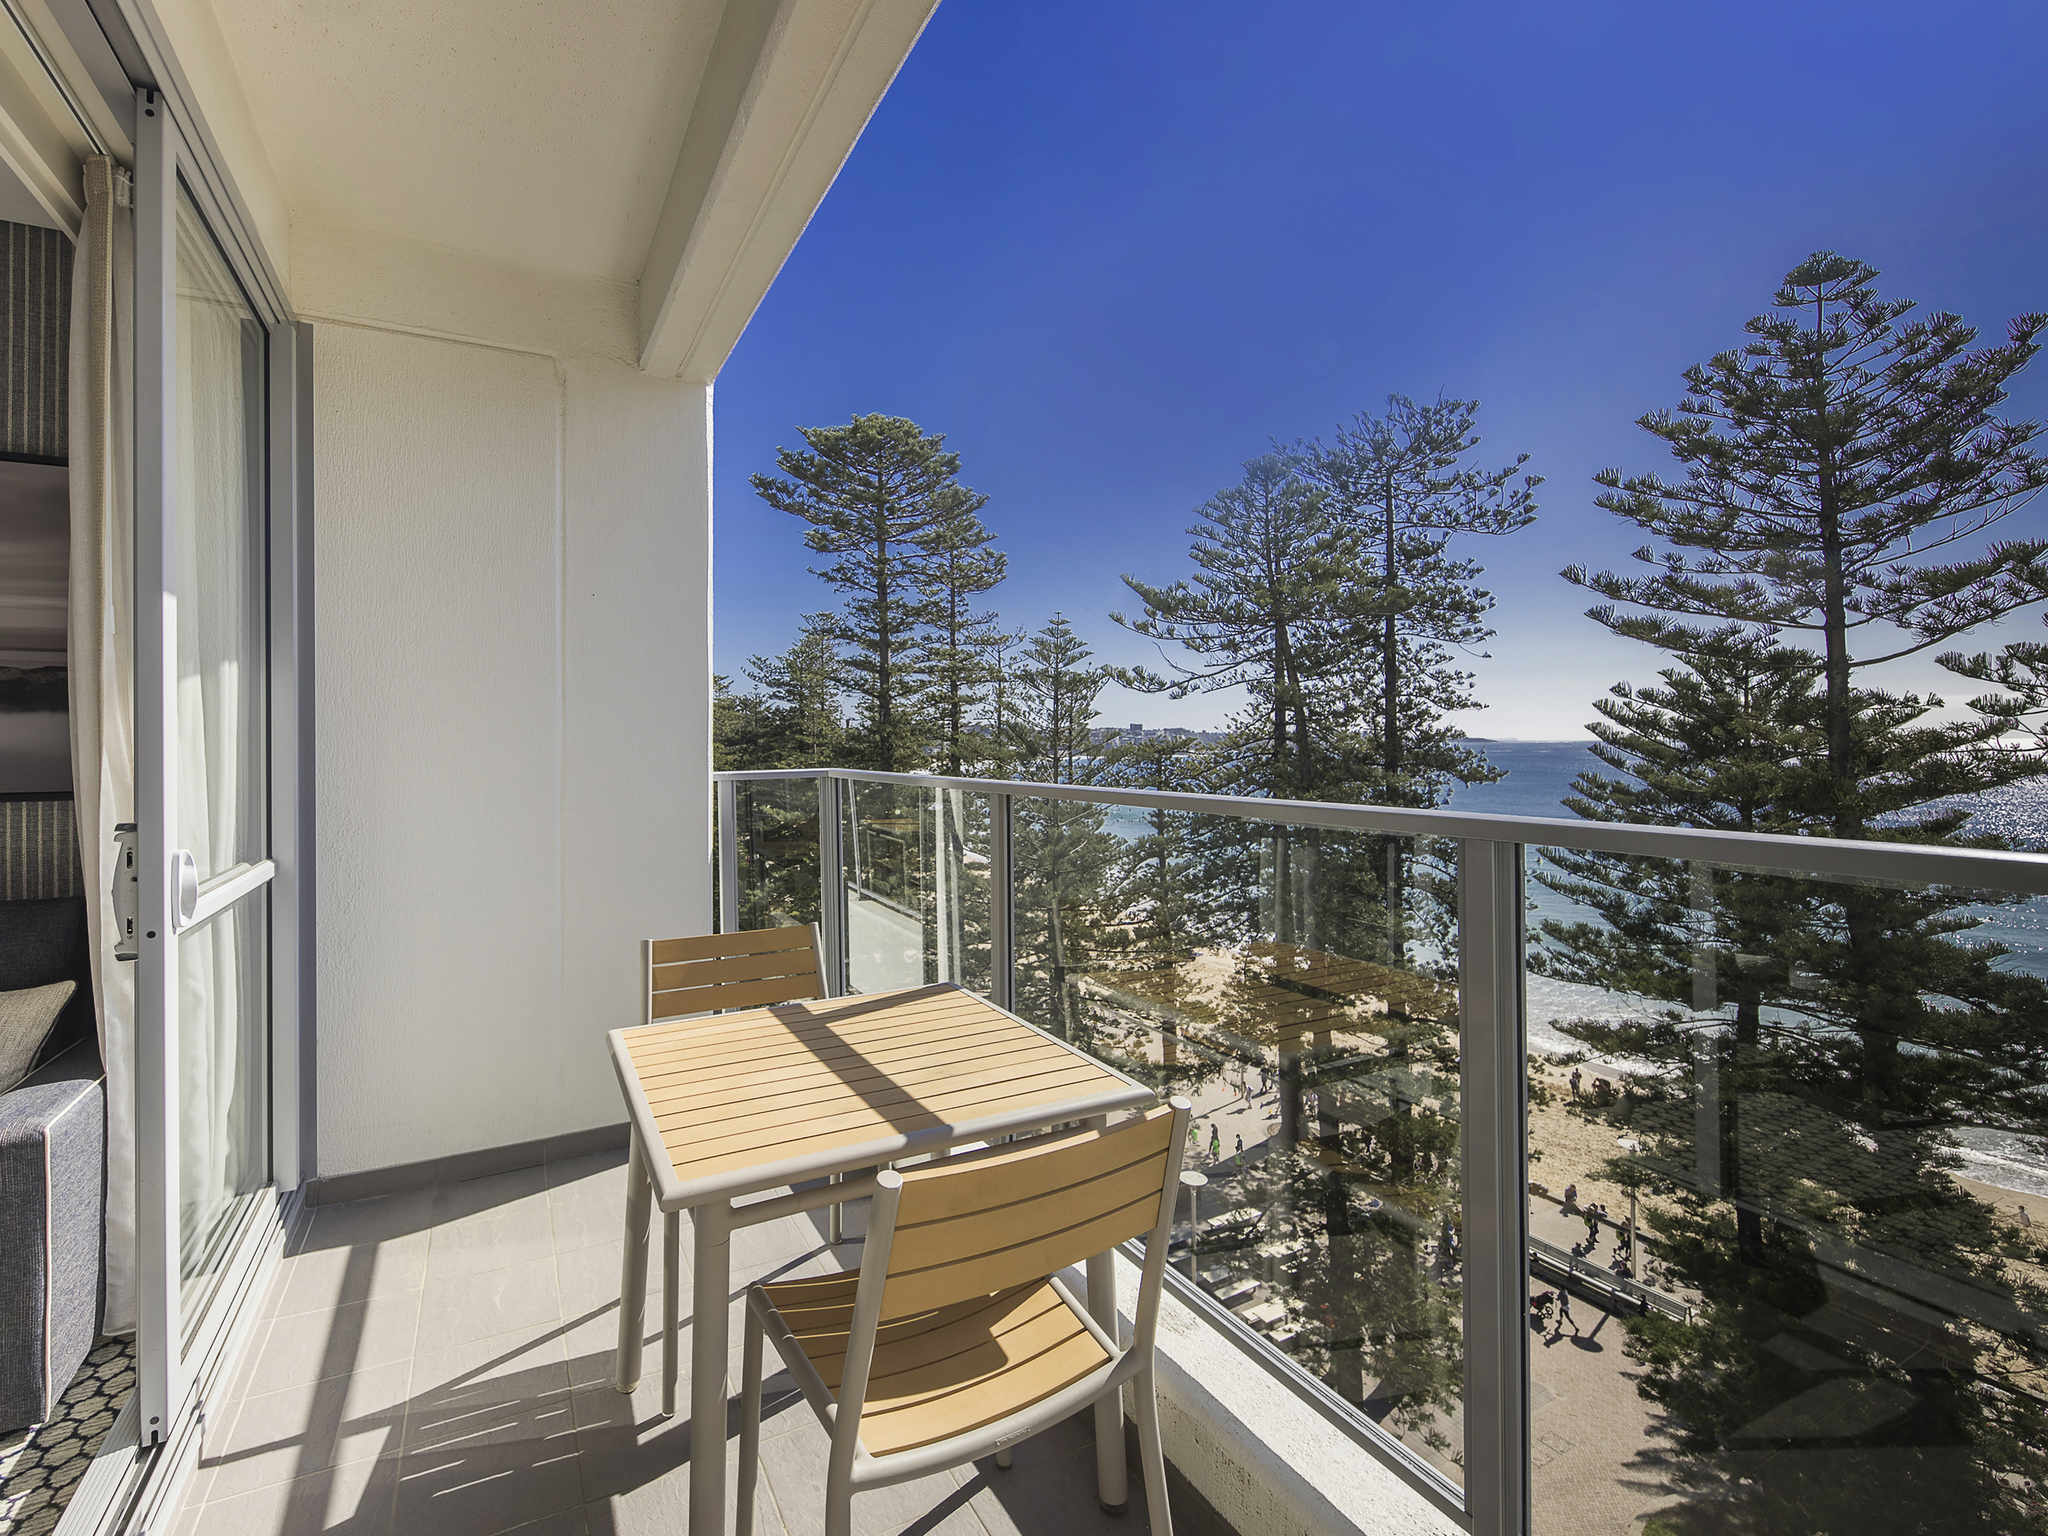 The Sebel Sydney Manly Beach - AccorHotels